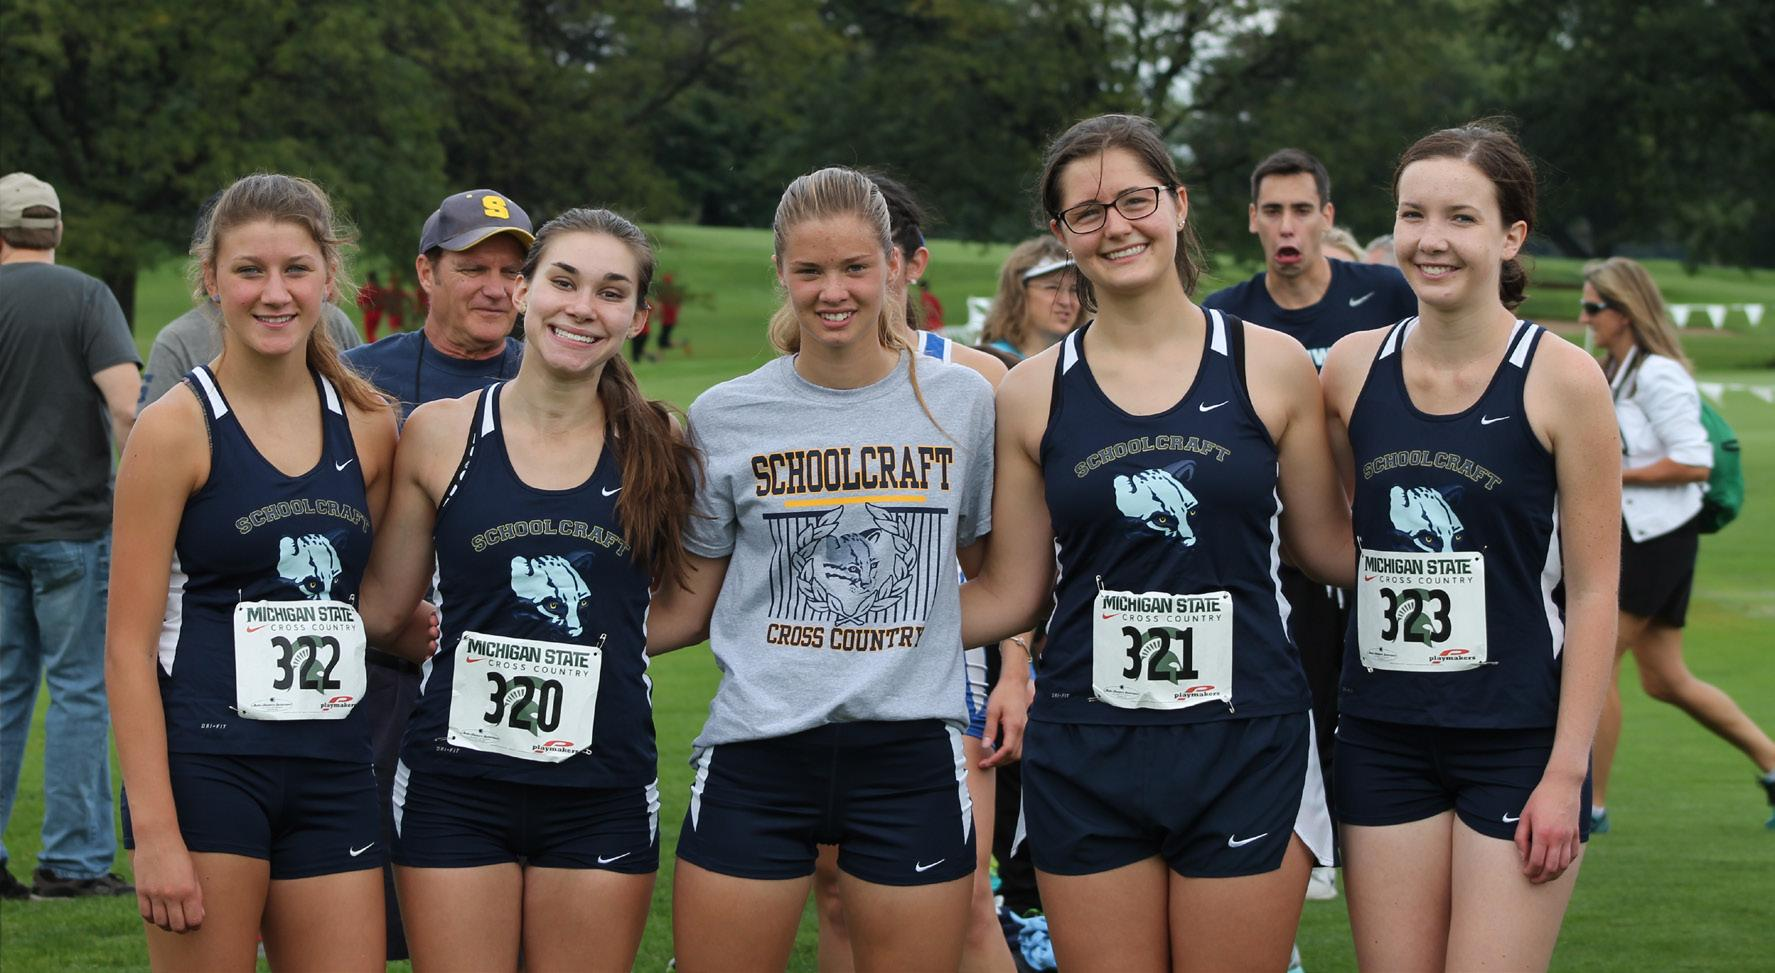 Photo courtesy of the Goyer family.  Memebers of the Women's Cross Country Team, from left to right, Freshman Lindsey Gallagher, Audrey Baetz, freshman Chelsea Kovacs, sophomore Grace Doolittle and freshman Caitlyn Goyer, pose for a photo after a recent meet.